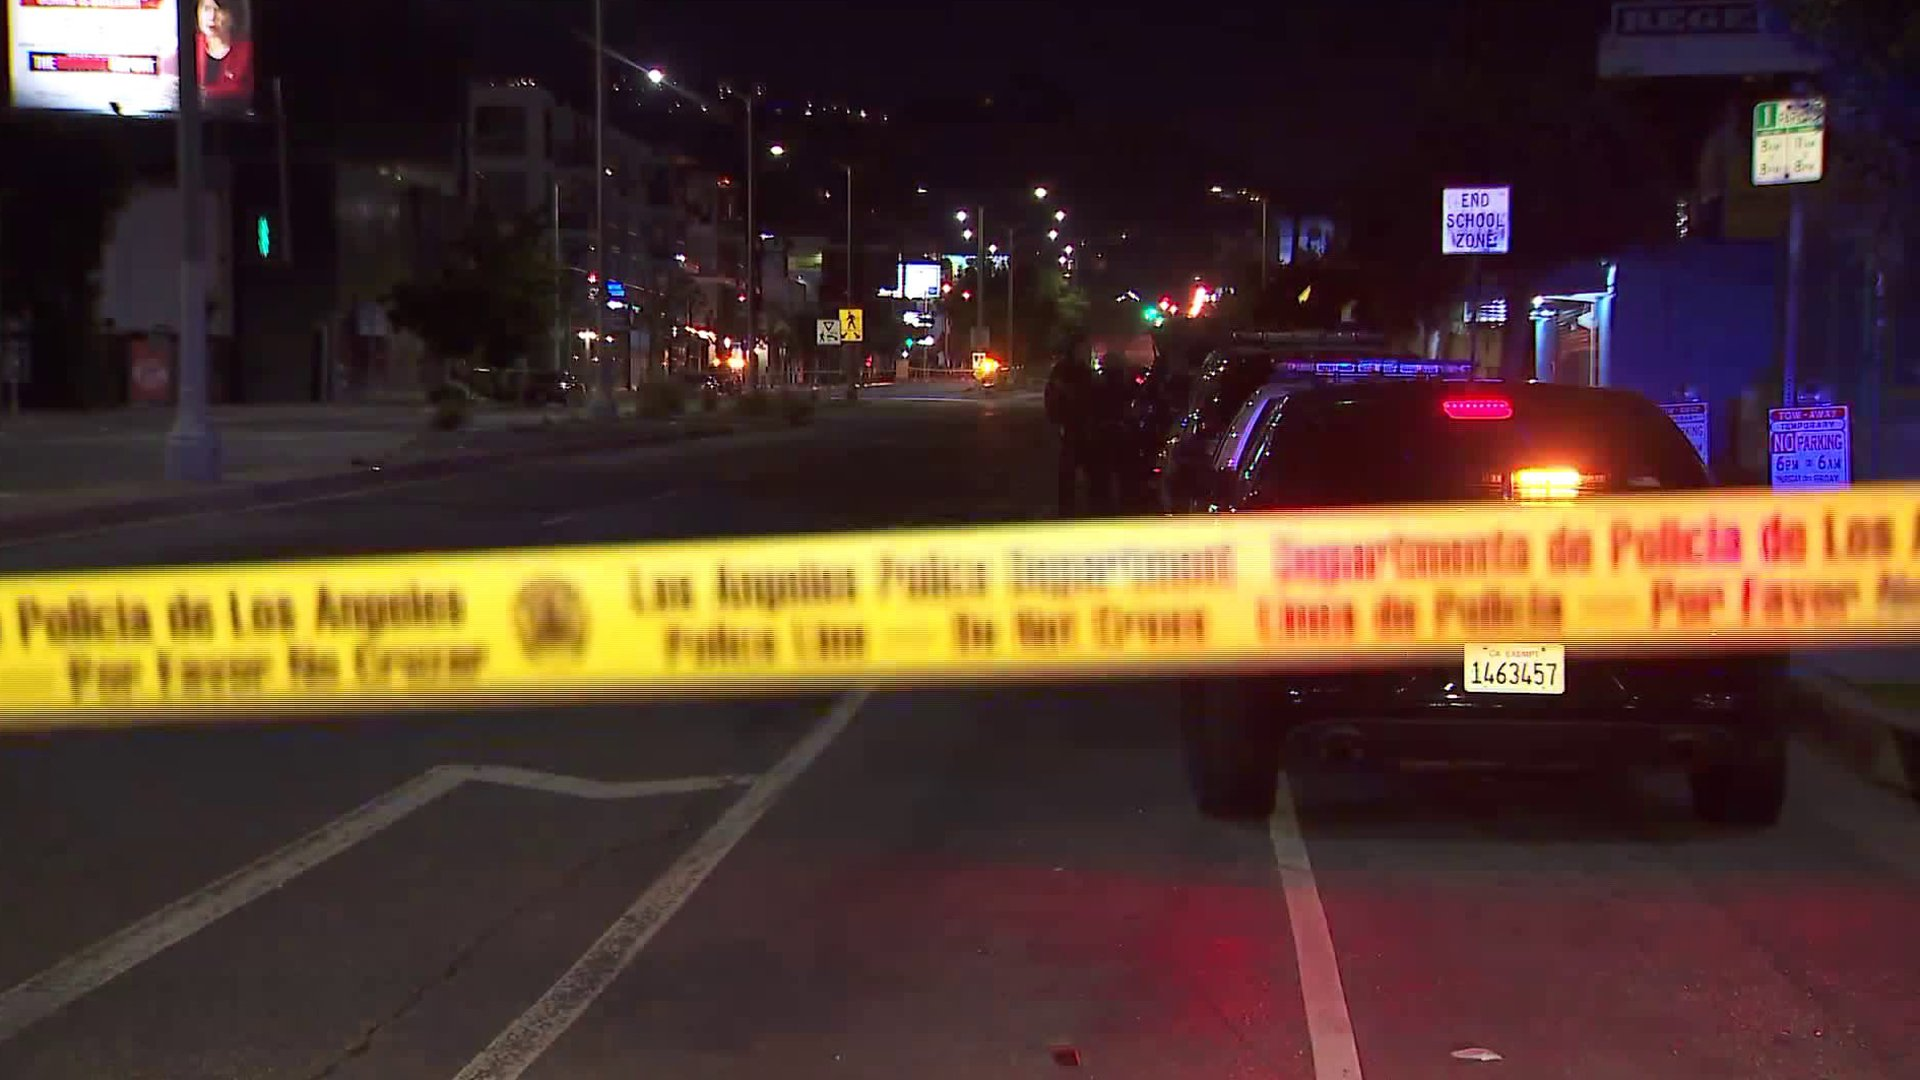 A Los Angeles Police Department crime scene tape is seen on Fairfax Avenue in the West Hollywood area, where a deadly shooting took place on Jan. 20, 2020. (Credit: KTLA)